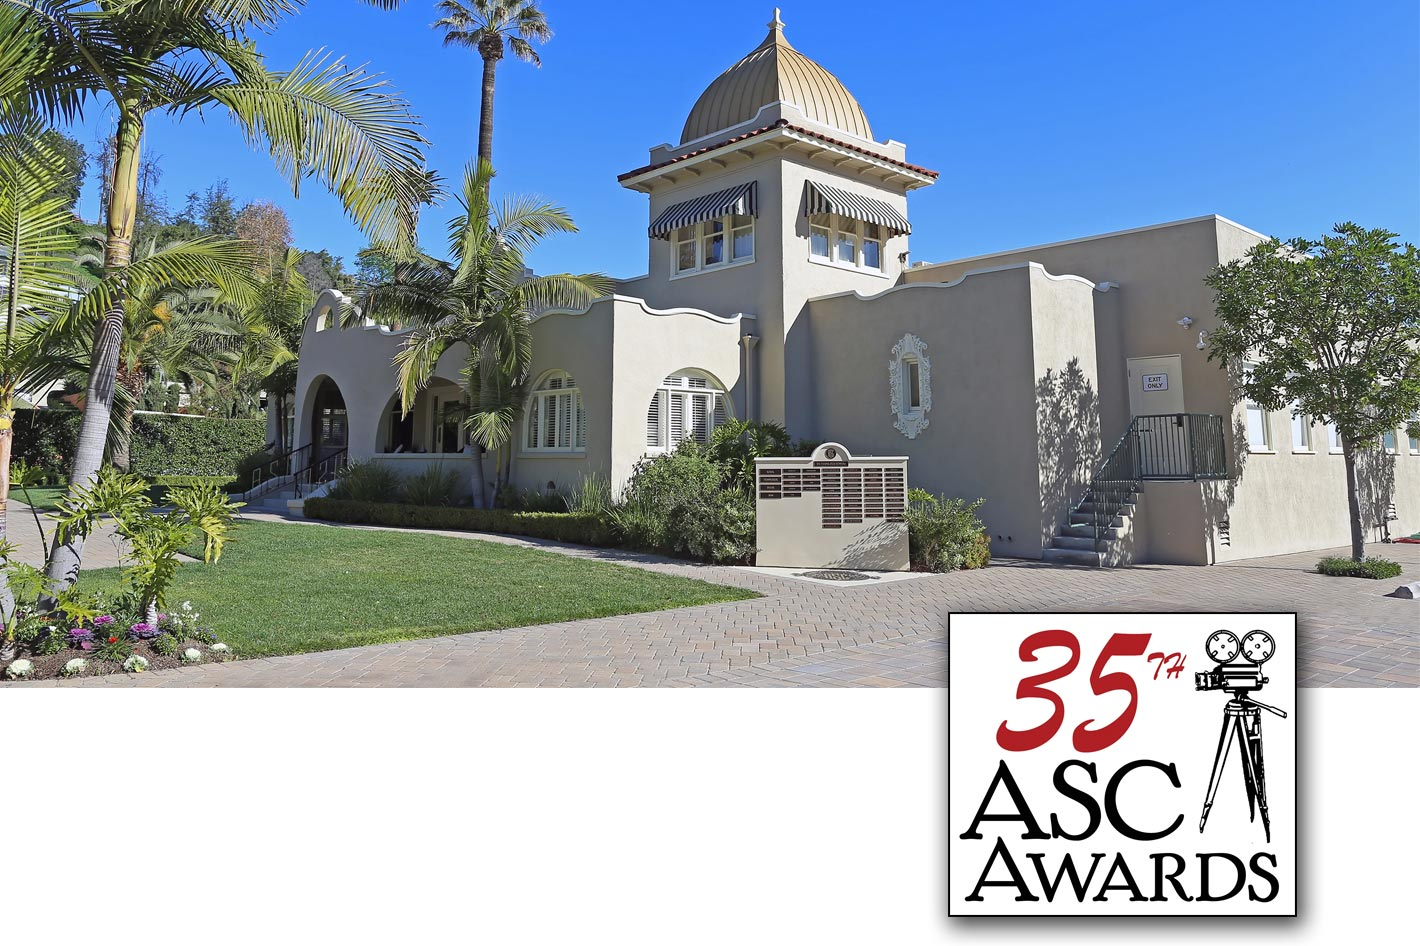 ASC announces 2020 Student Heritage Award winners